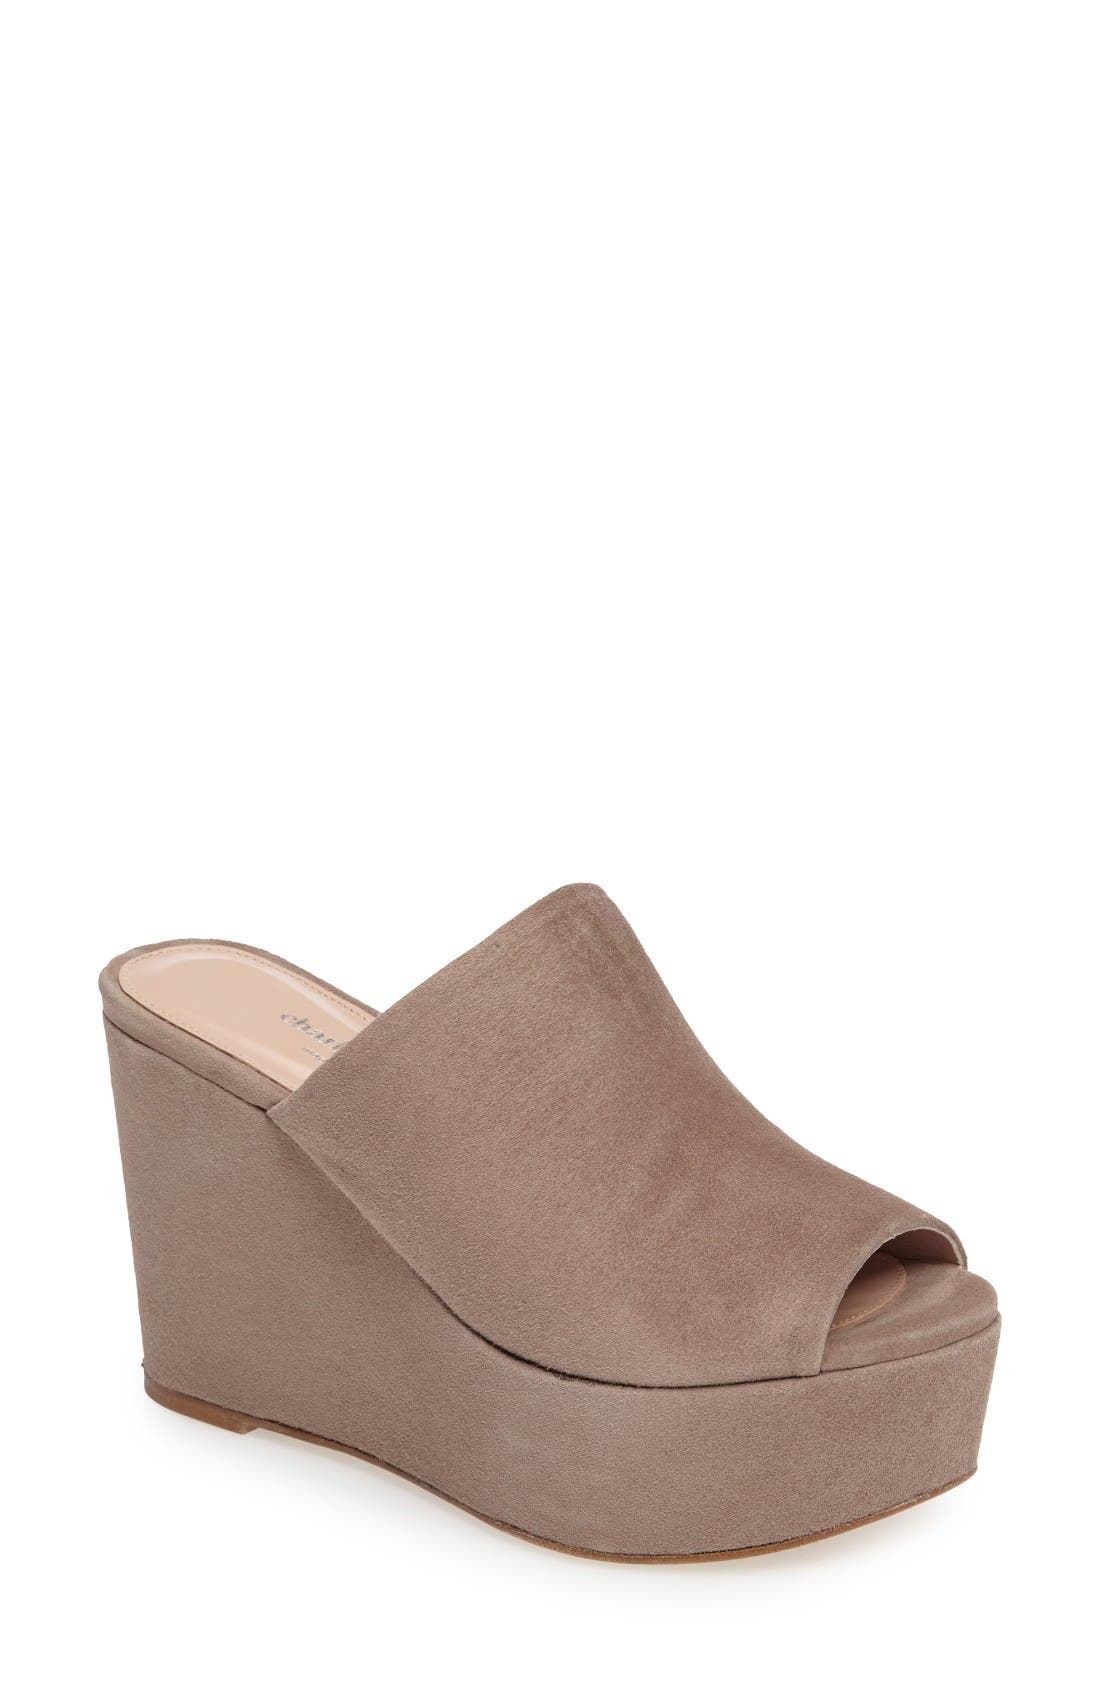 Charles by Charles David Padma Platform Wedge Mule,                             Main thumbnail 1, color,                             Truffle Suede